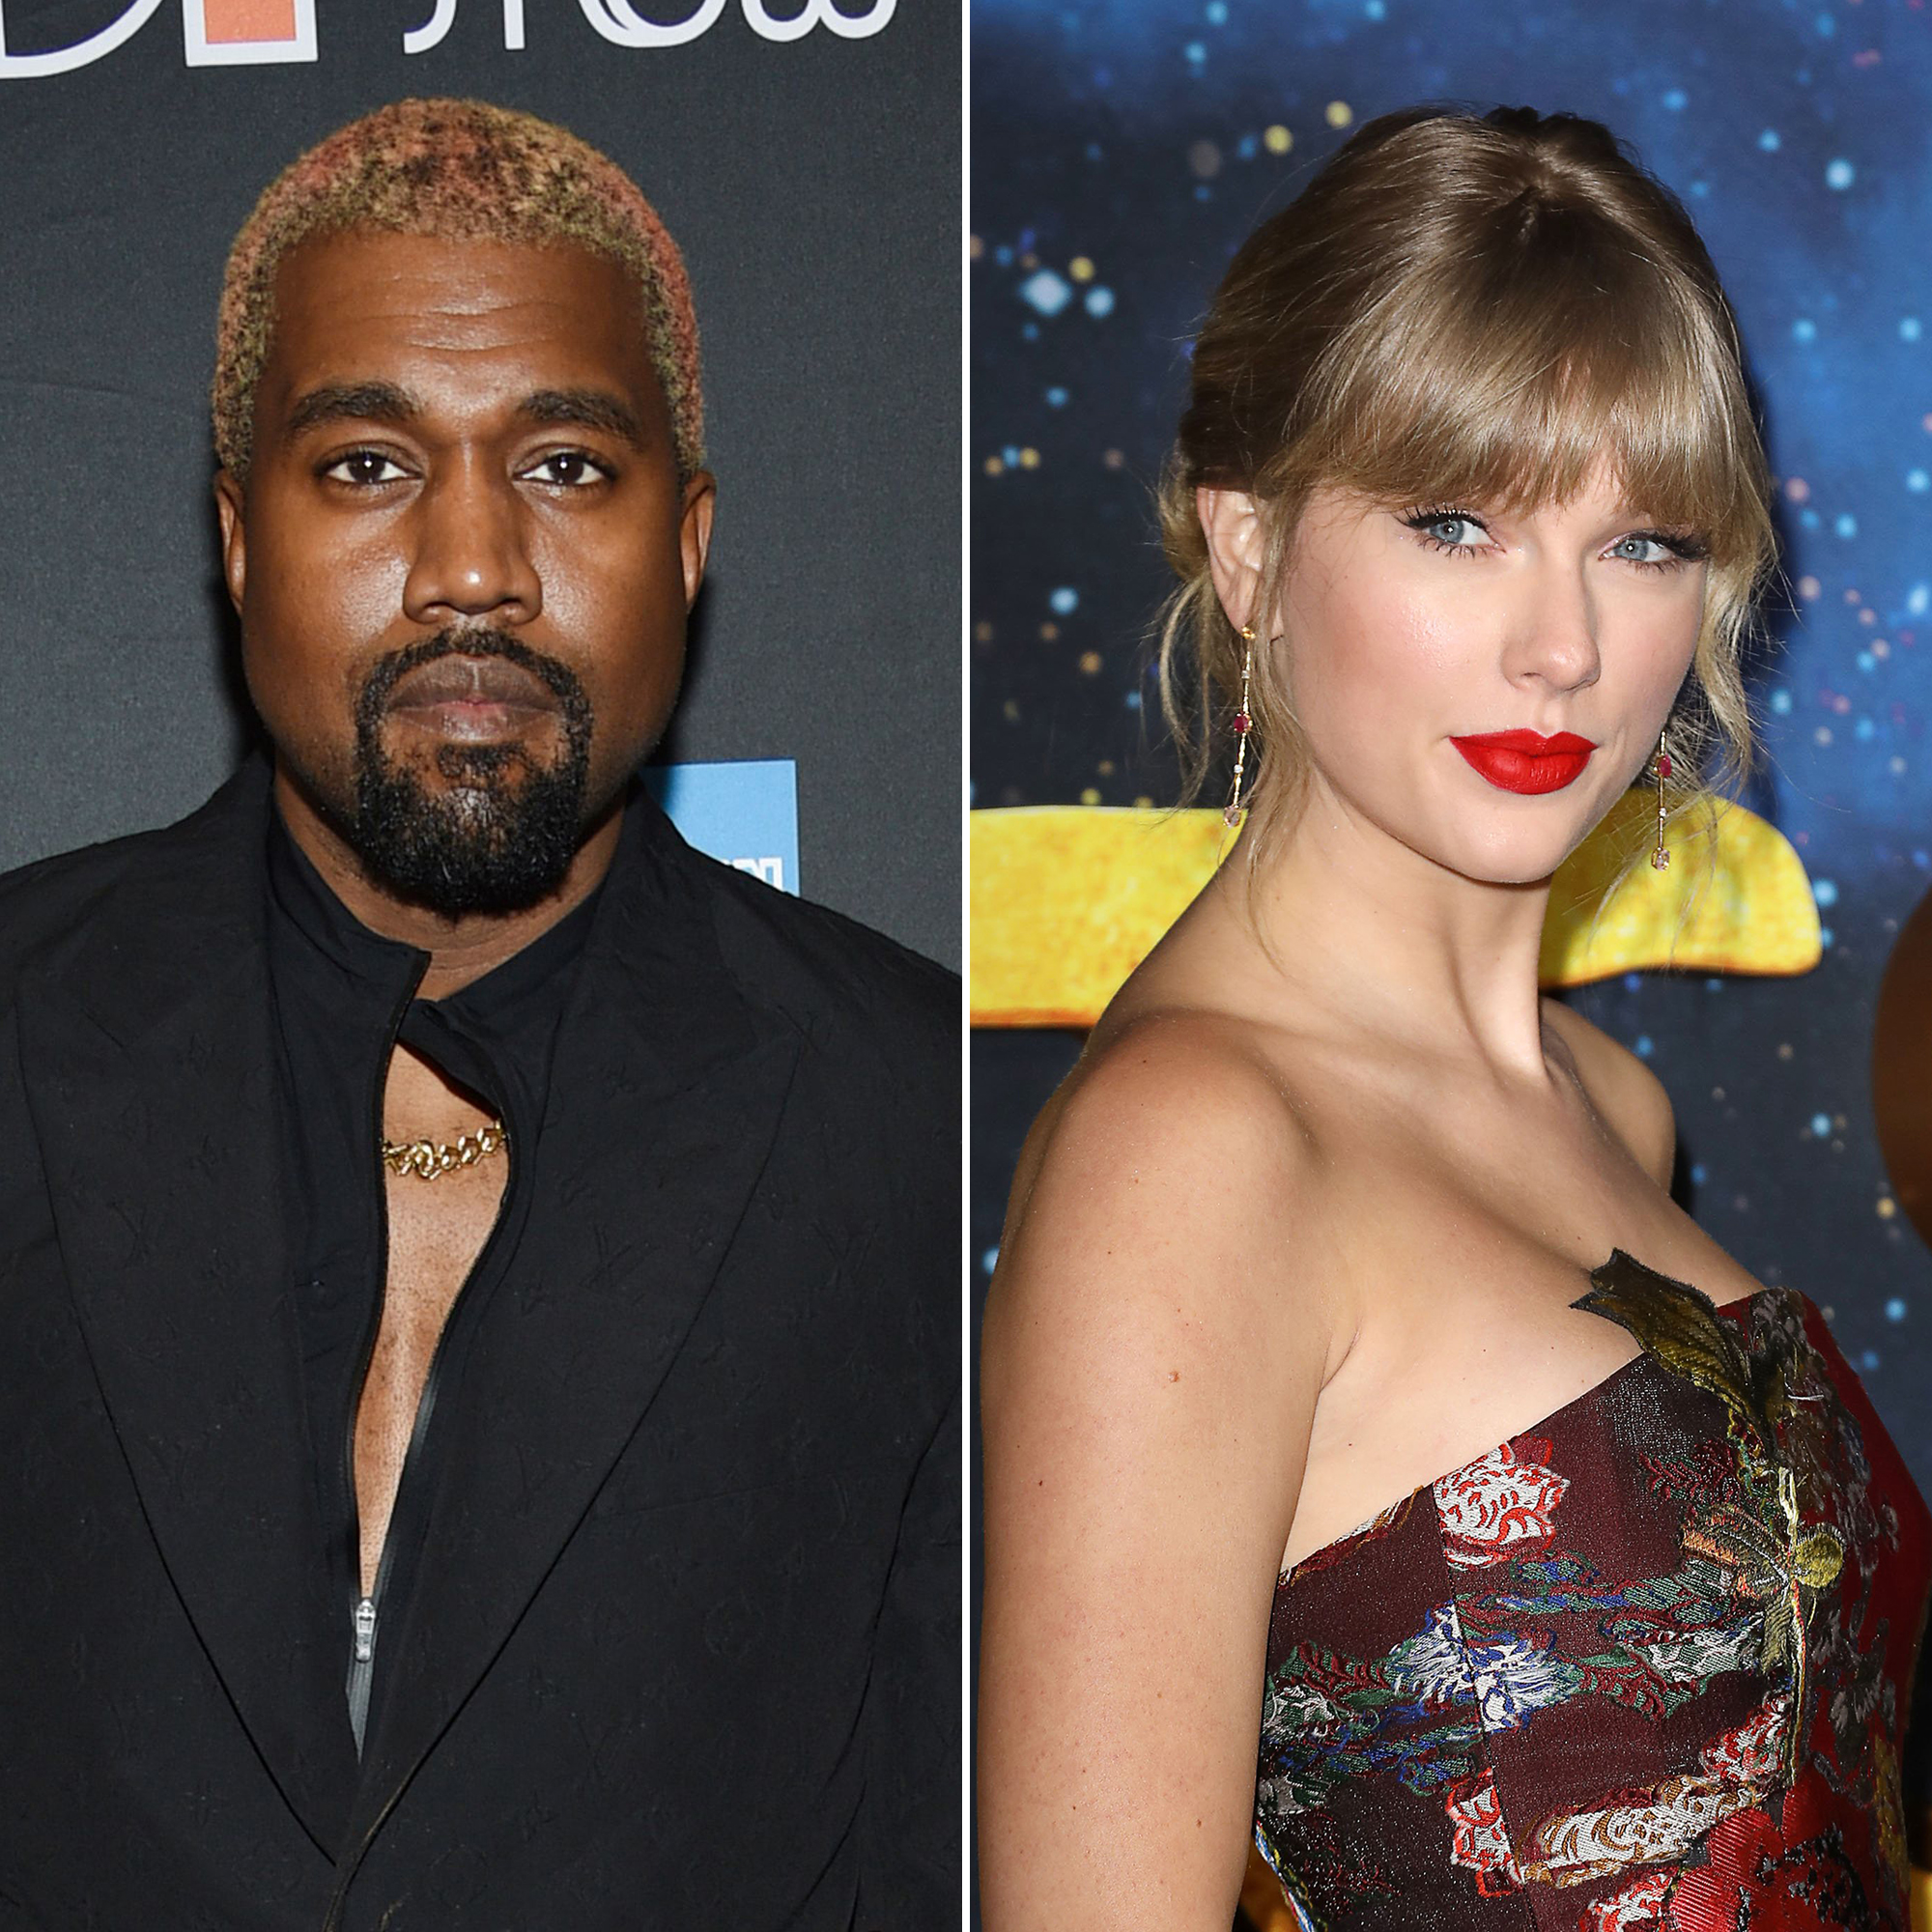 Kanye West Vows To Get Taylor Swift Her Music Back Amid Twitter Rant